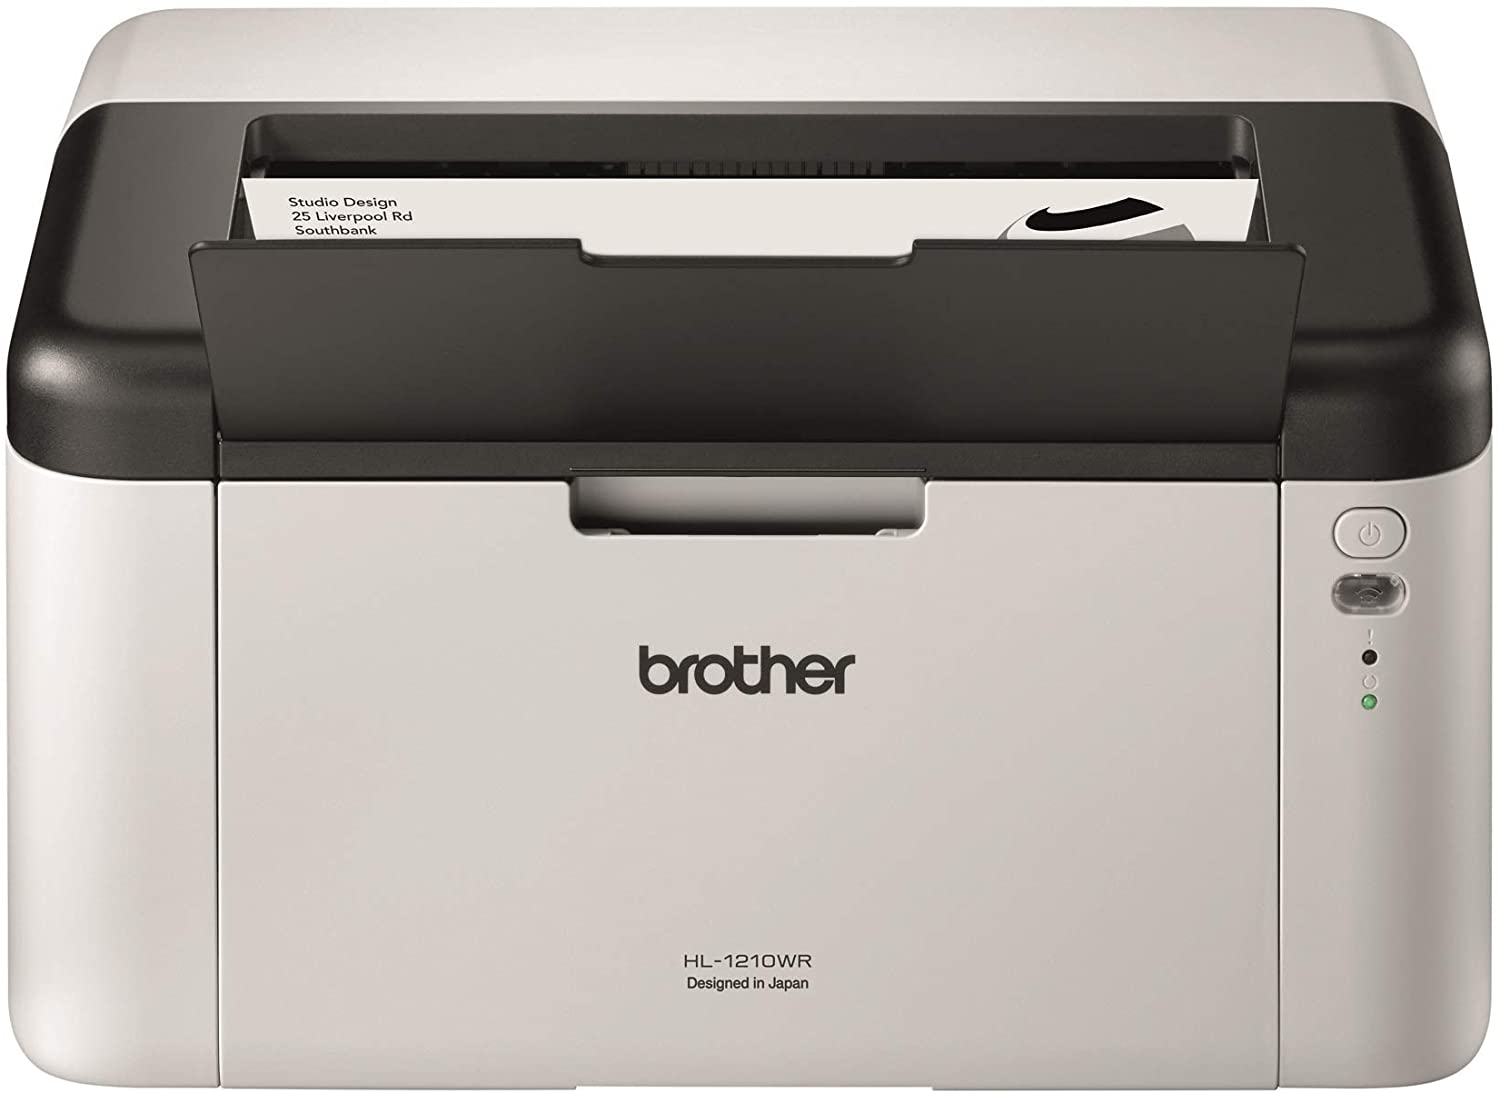 Brother HL-1210W Mono Laser Printer - Single Function, Wireless,USB 2.0, Compact, A4 Printer, Small Office,Home Printer uk reviews